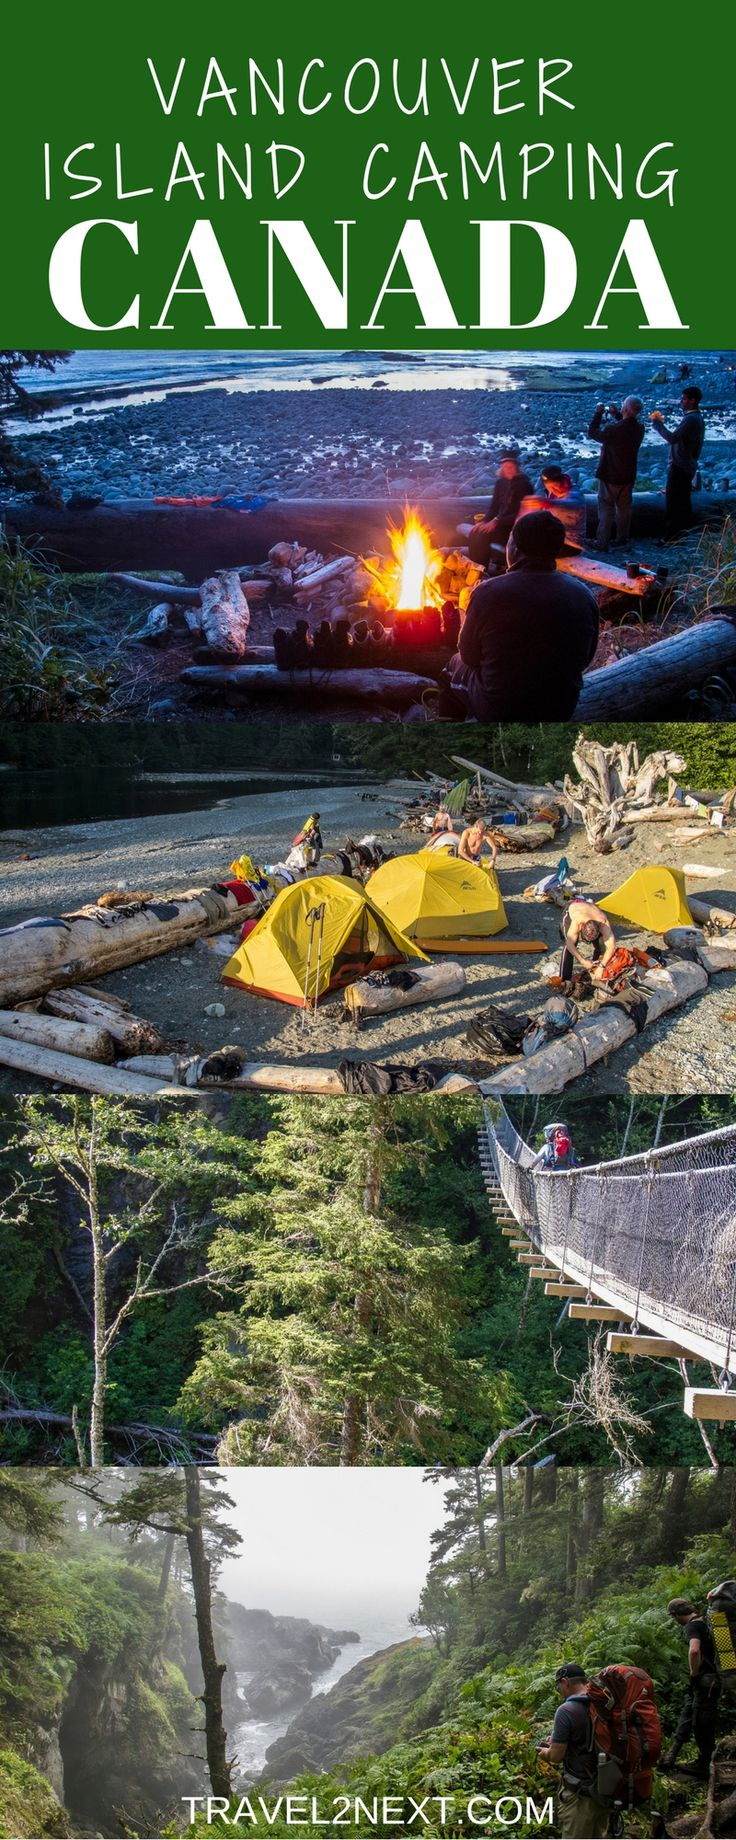 Camping Vancouver Island, British Columbia, Canada. Whale watching, birding and bear watching are only some of the things that attracttravellers to Vancouver Island.